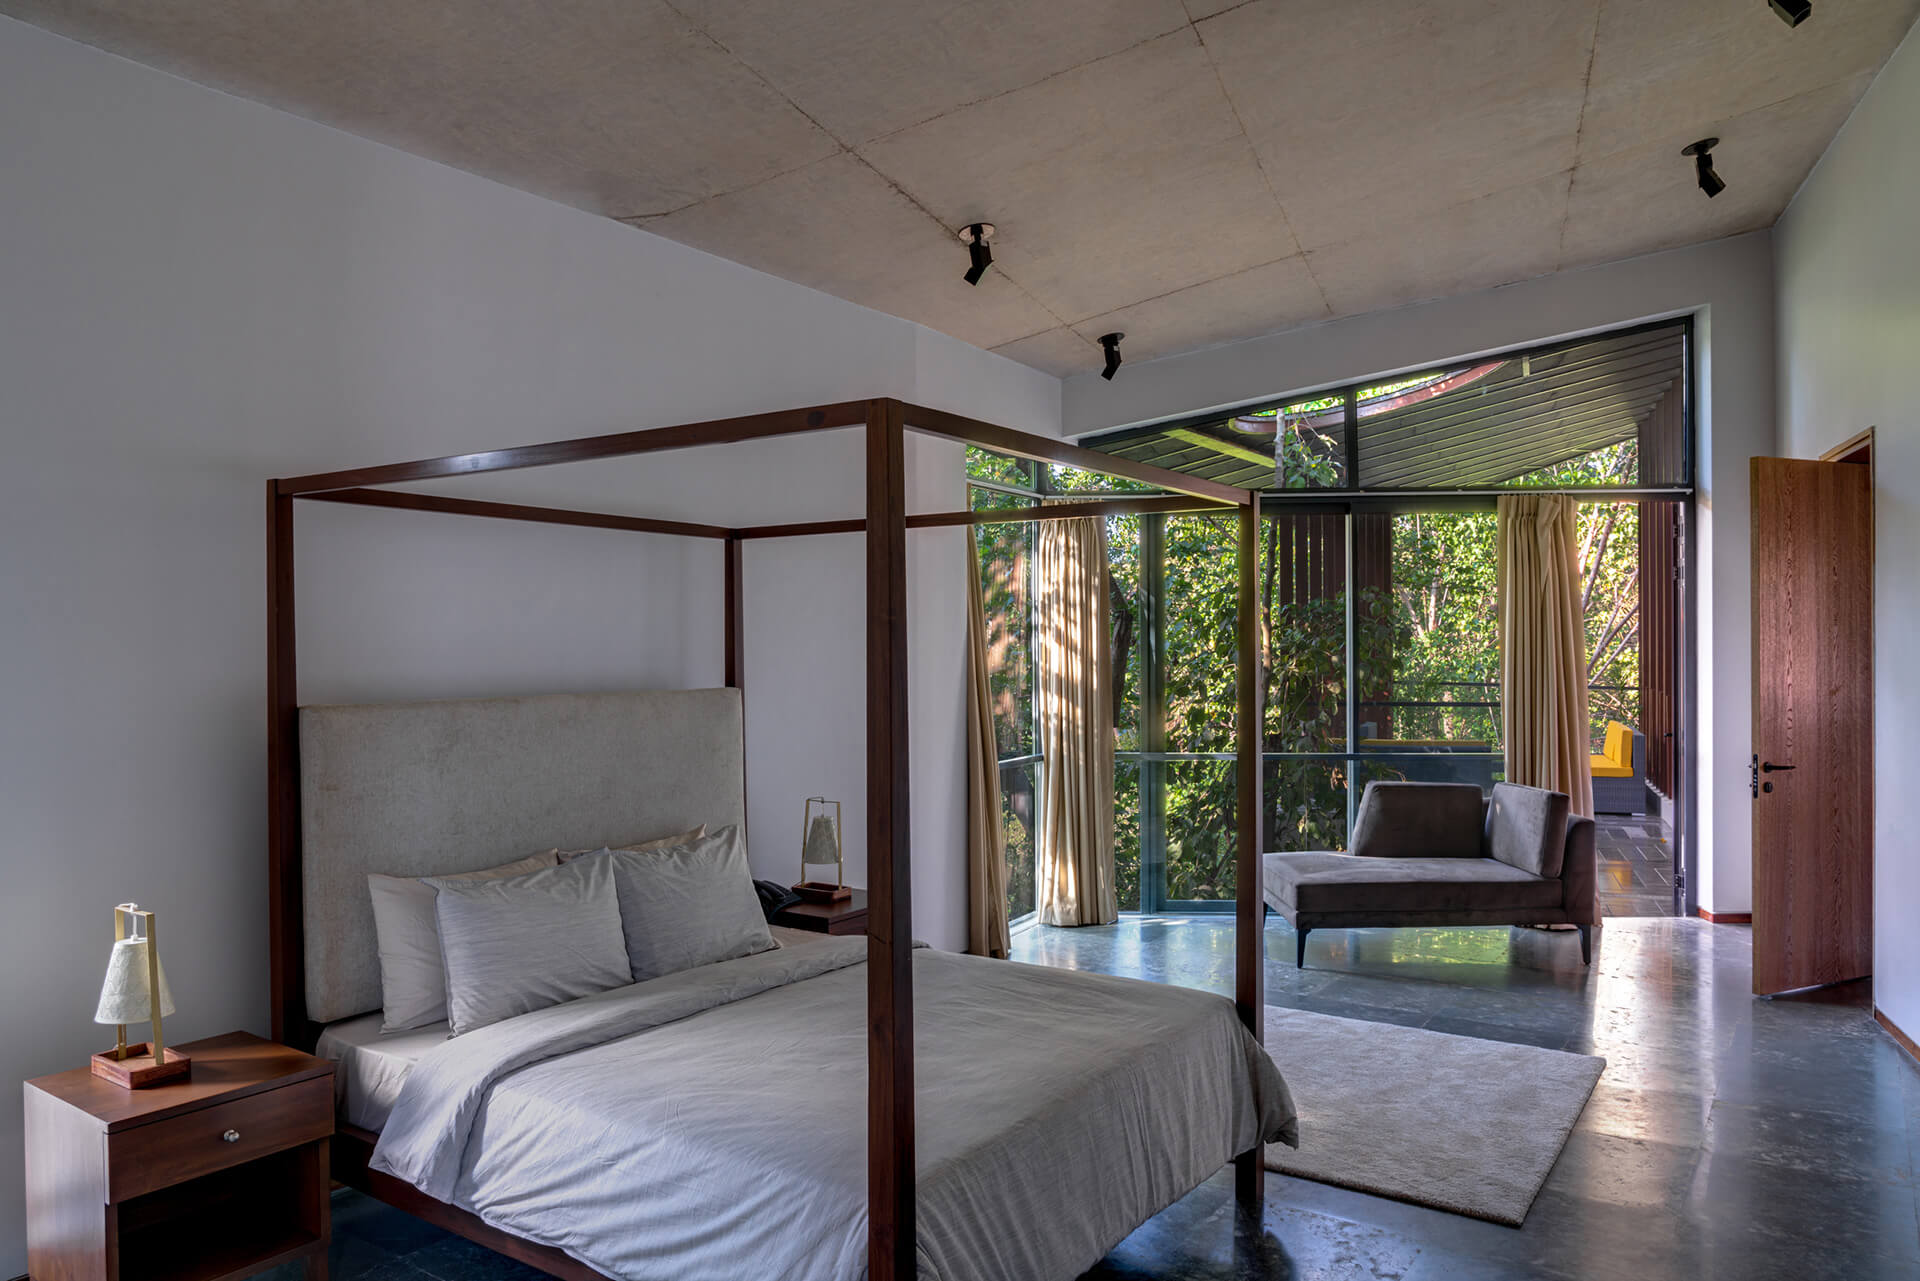 Terra's master bedroom highlighting its simplistic interiors and angular roof | Lua and Terra Si-oul villas by Kriss Real Estate and SAV architects | STIRworld